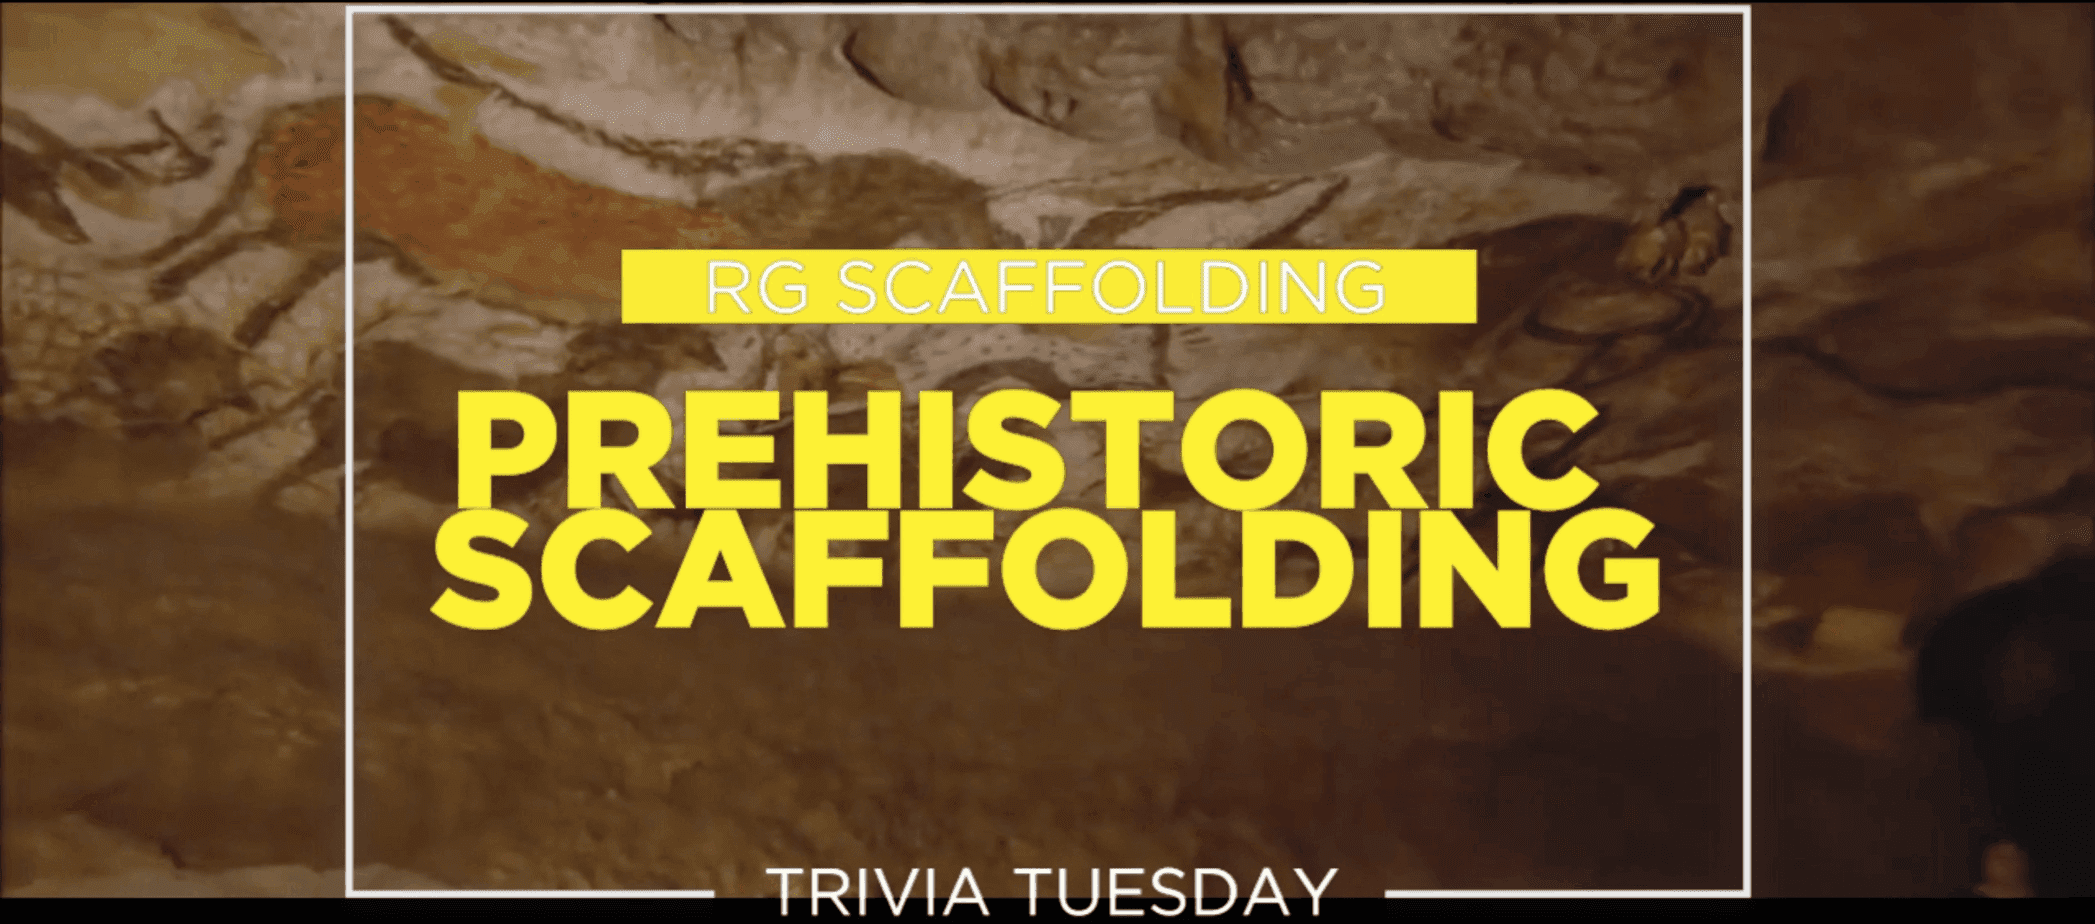 A History of Scaffolding